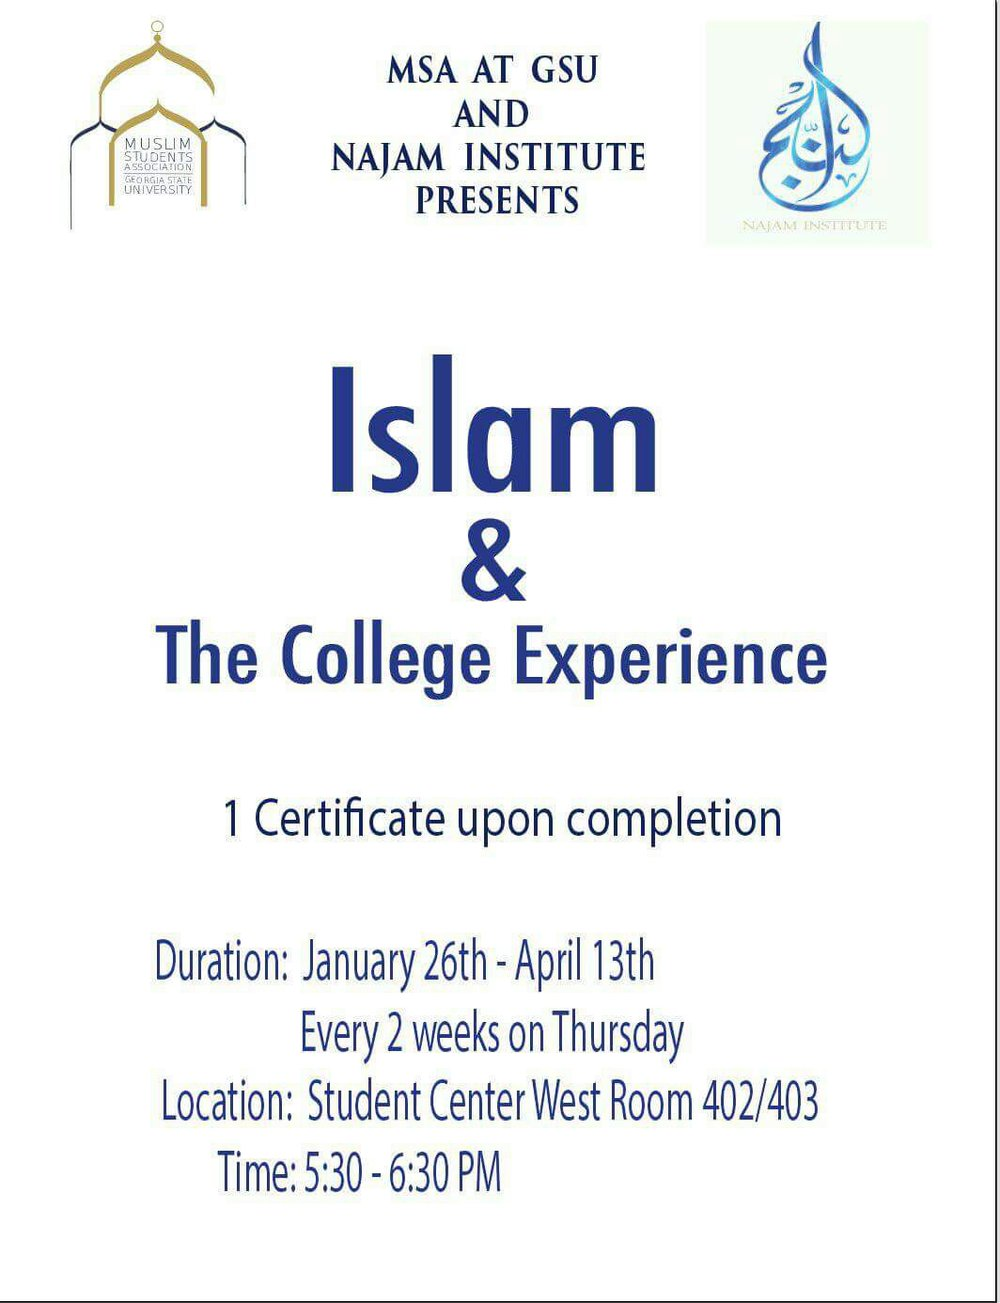 We hope everyone is having an excellent start to the new semester InshaAllah ! Don't forget to partake in the Islam and the College Experience classes starting on January 26th